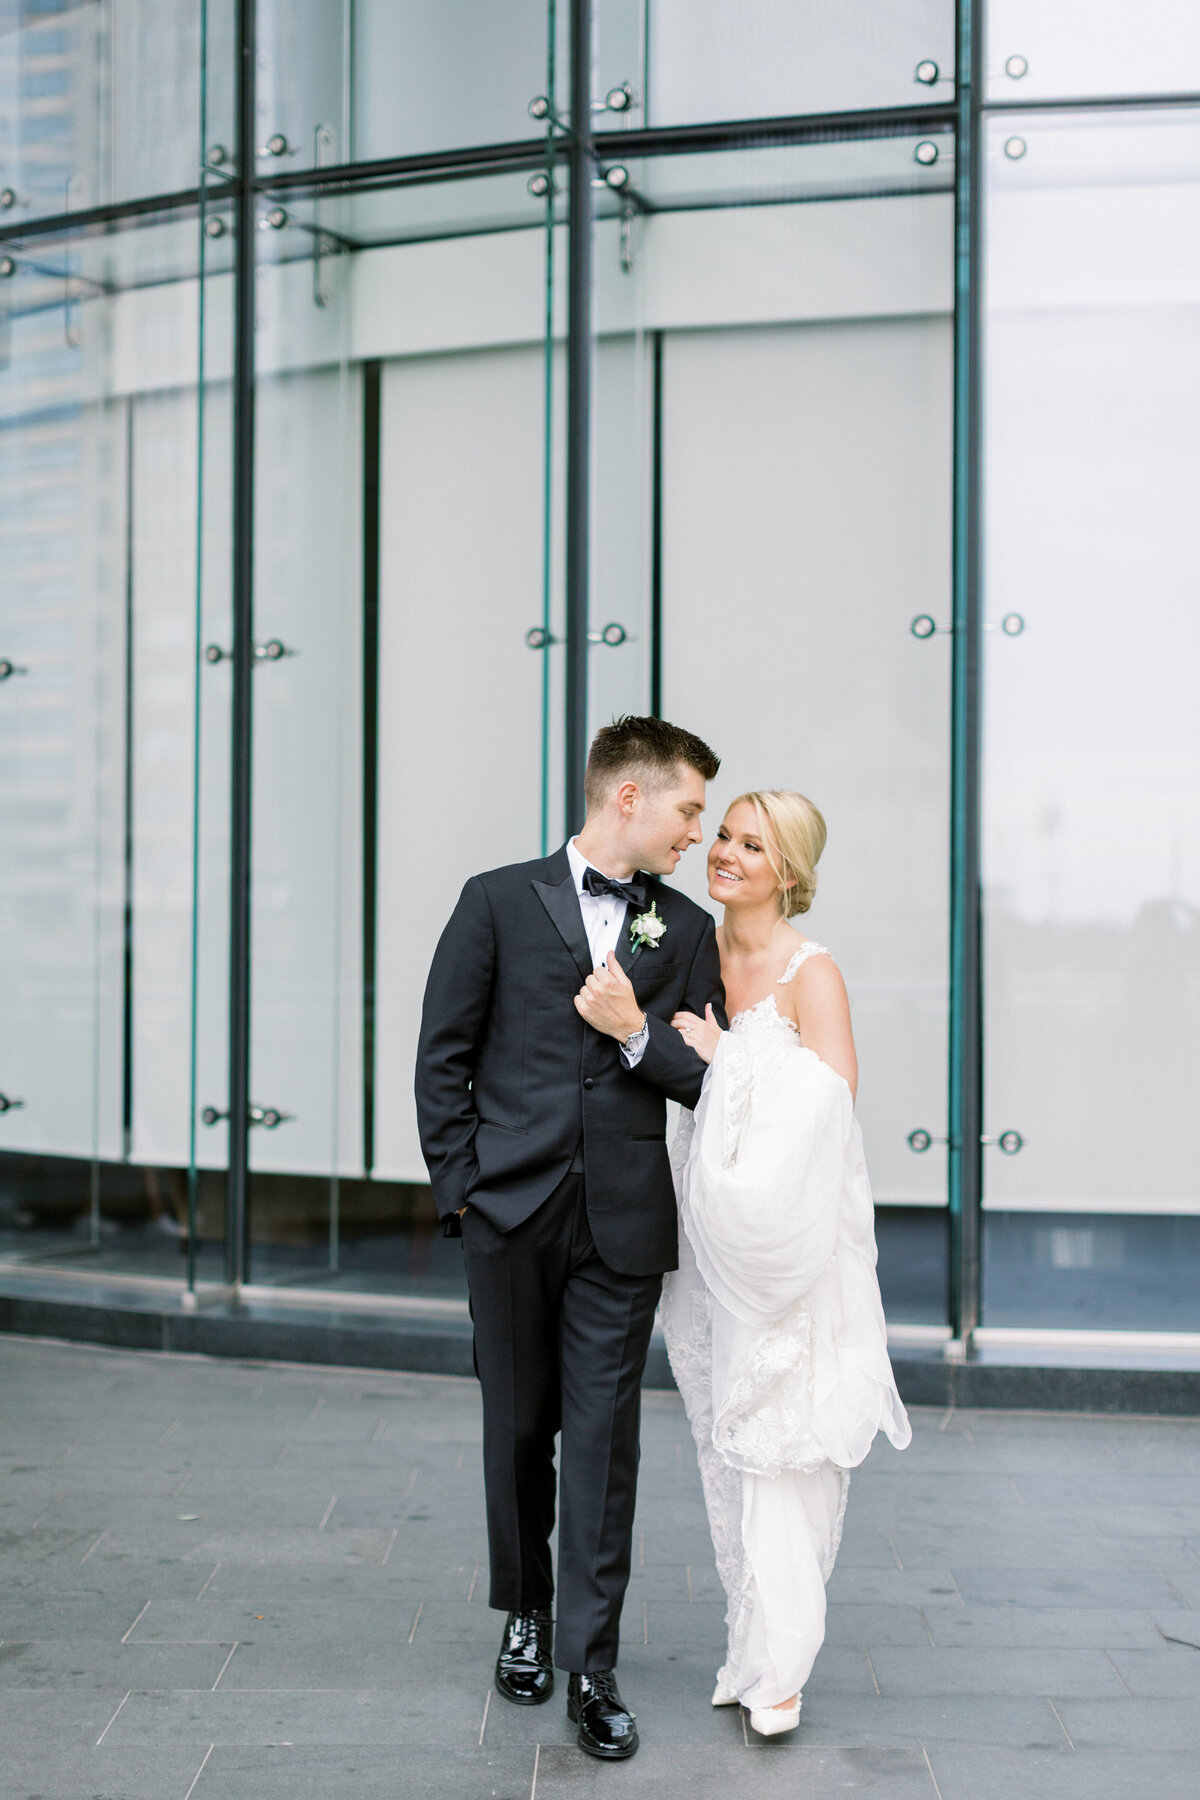 Downtown Chicago Wedding Photographer_Shauna and Jordon Photography012